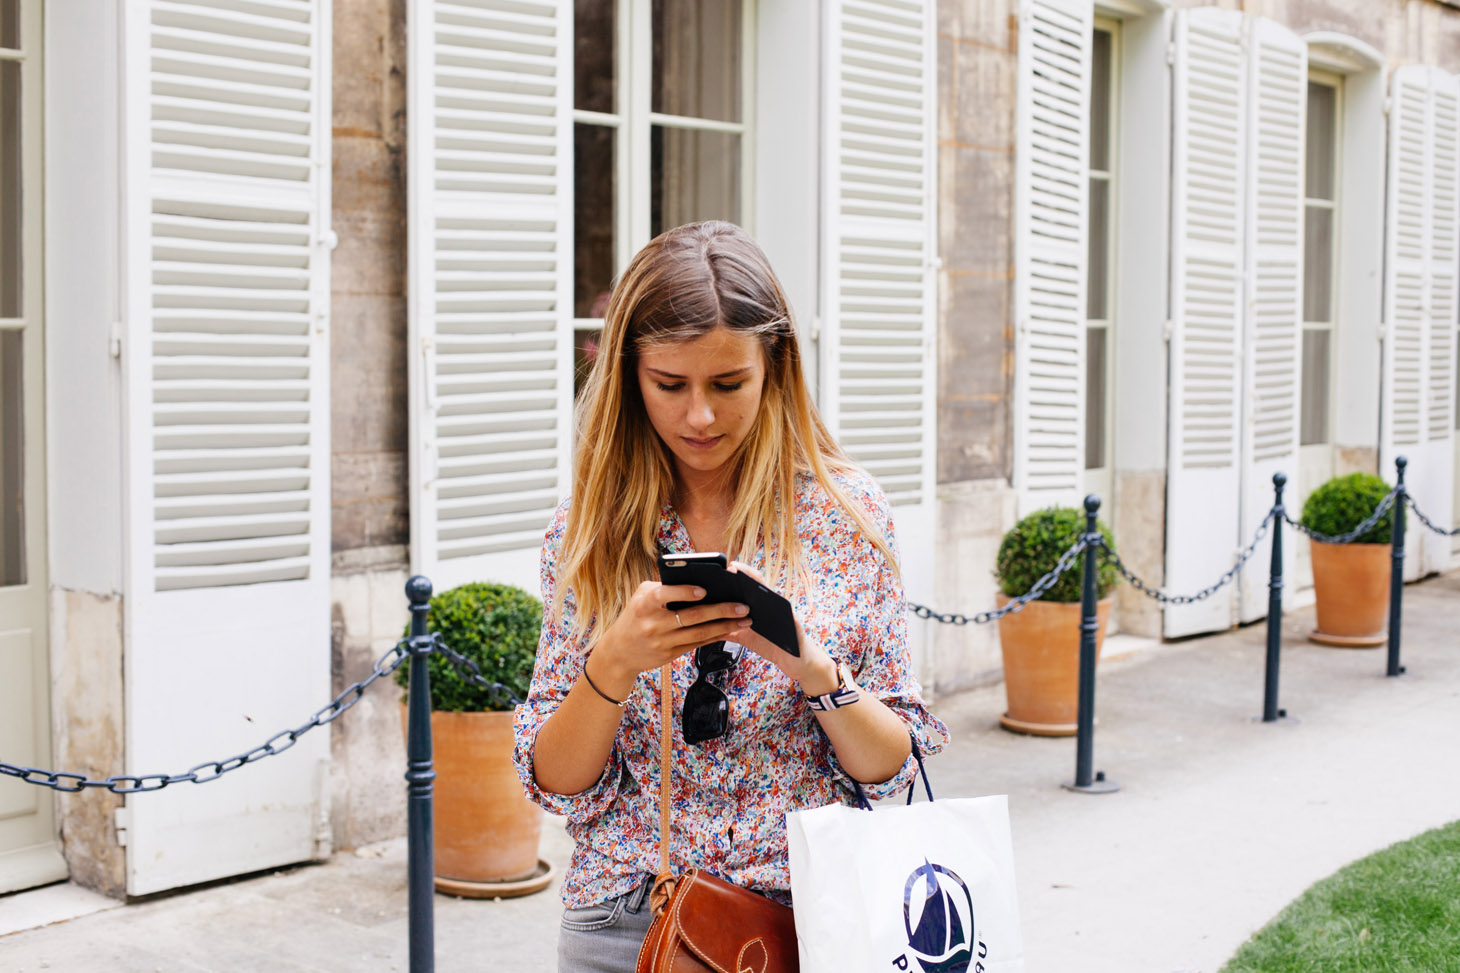 shopping-girl-texting